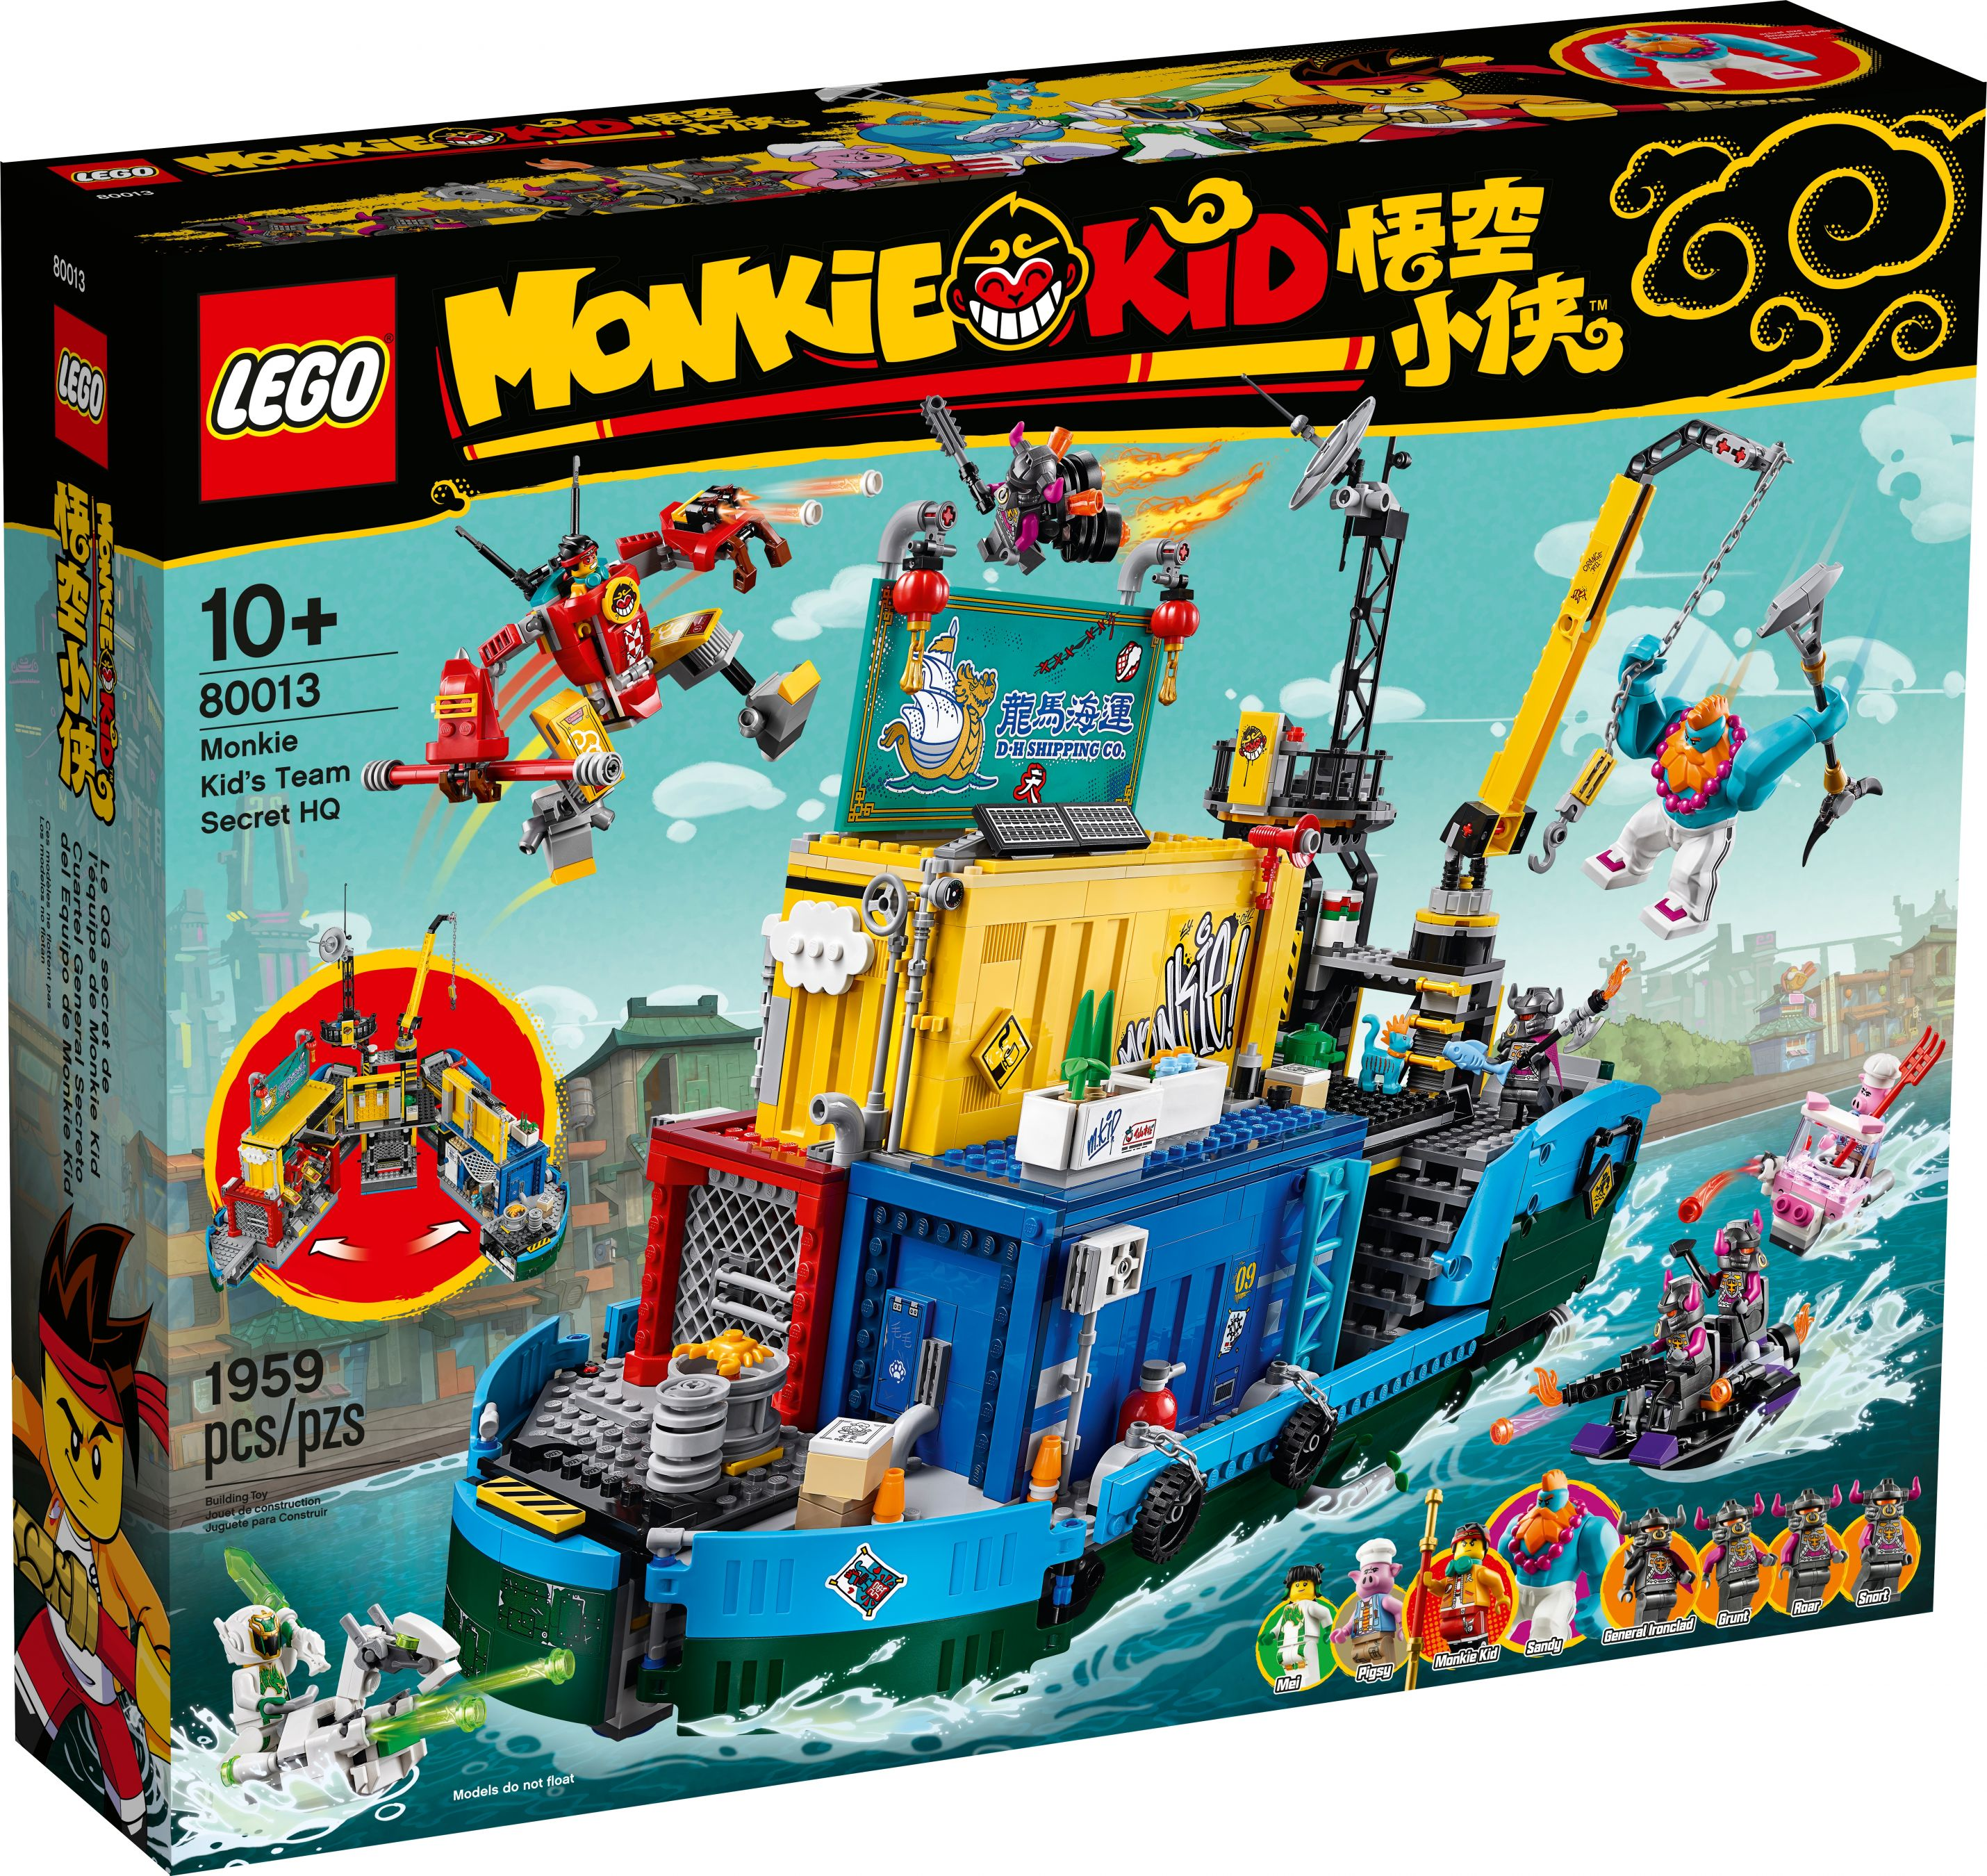 LEGO Monkie Kid 80013 Monkie Kids geheime Teambasis LEGO_80013_alt1.jpg